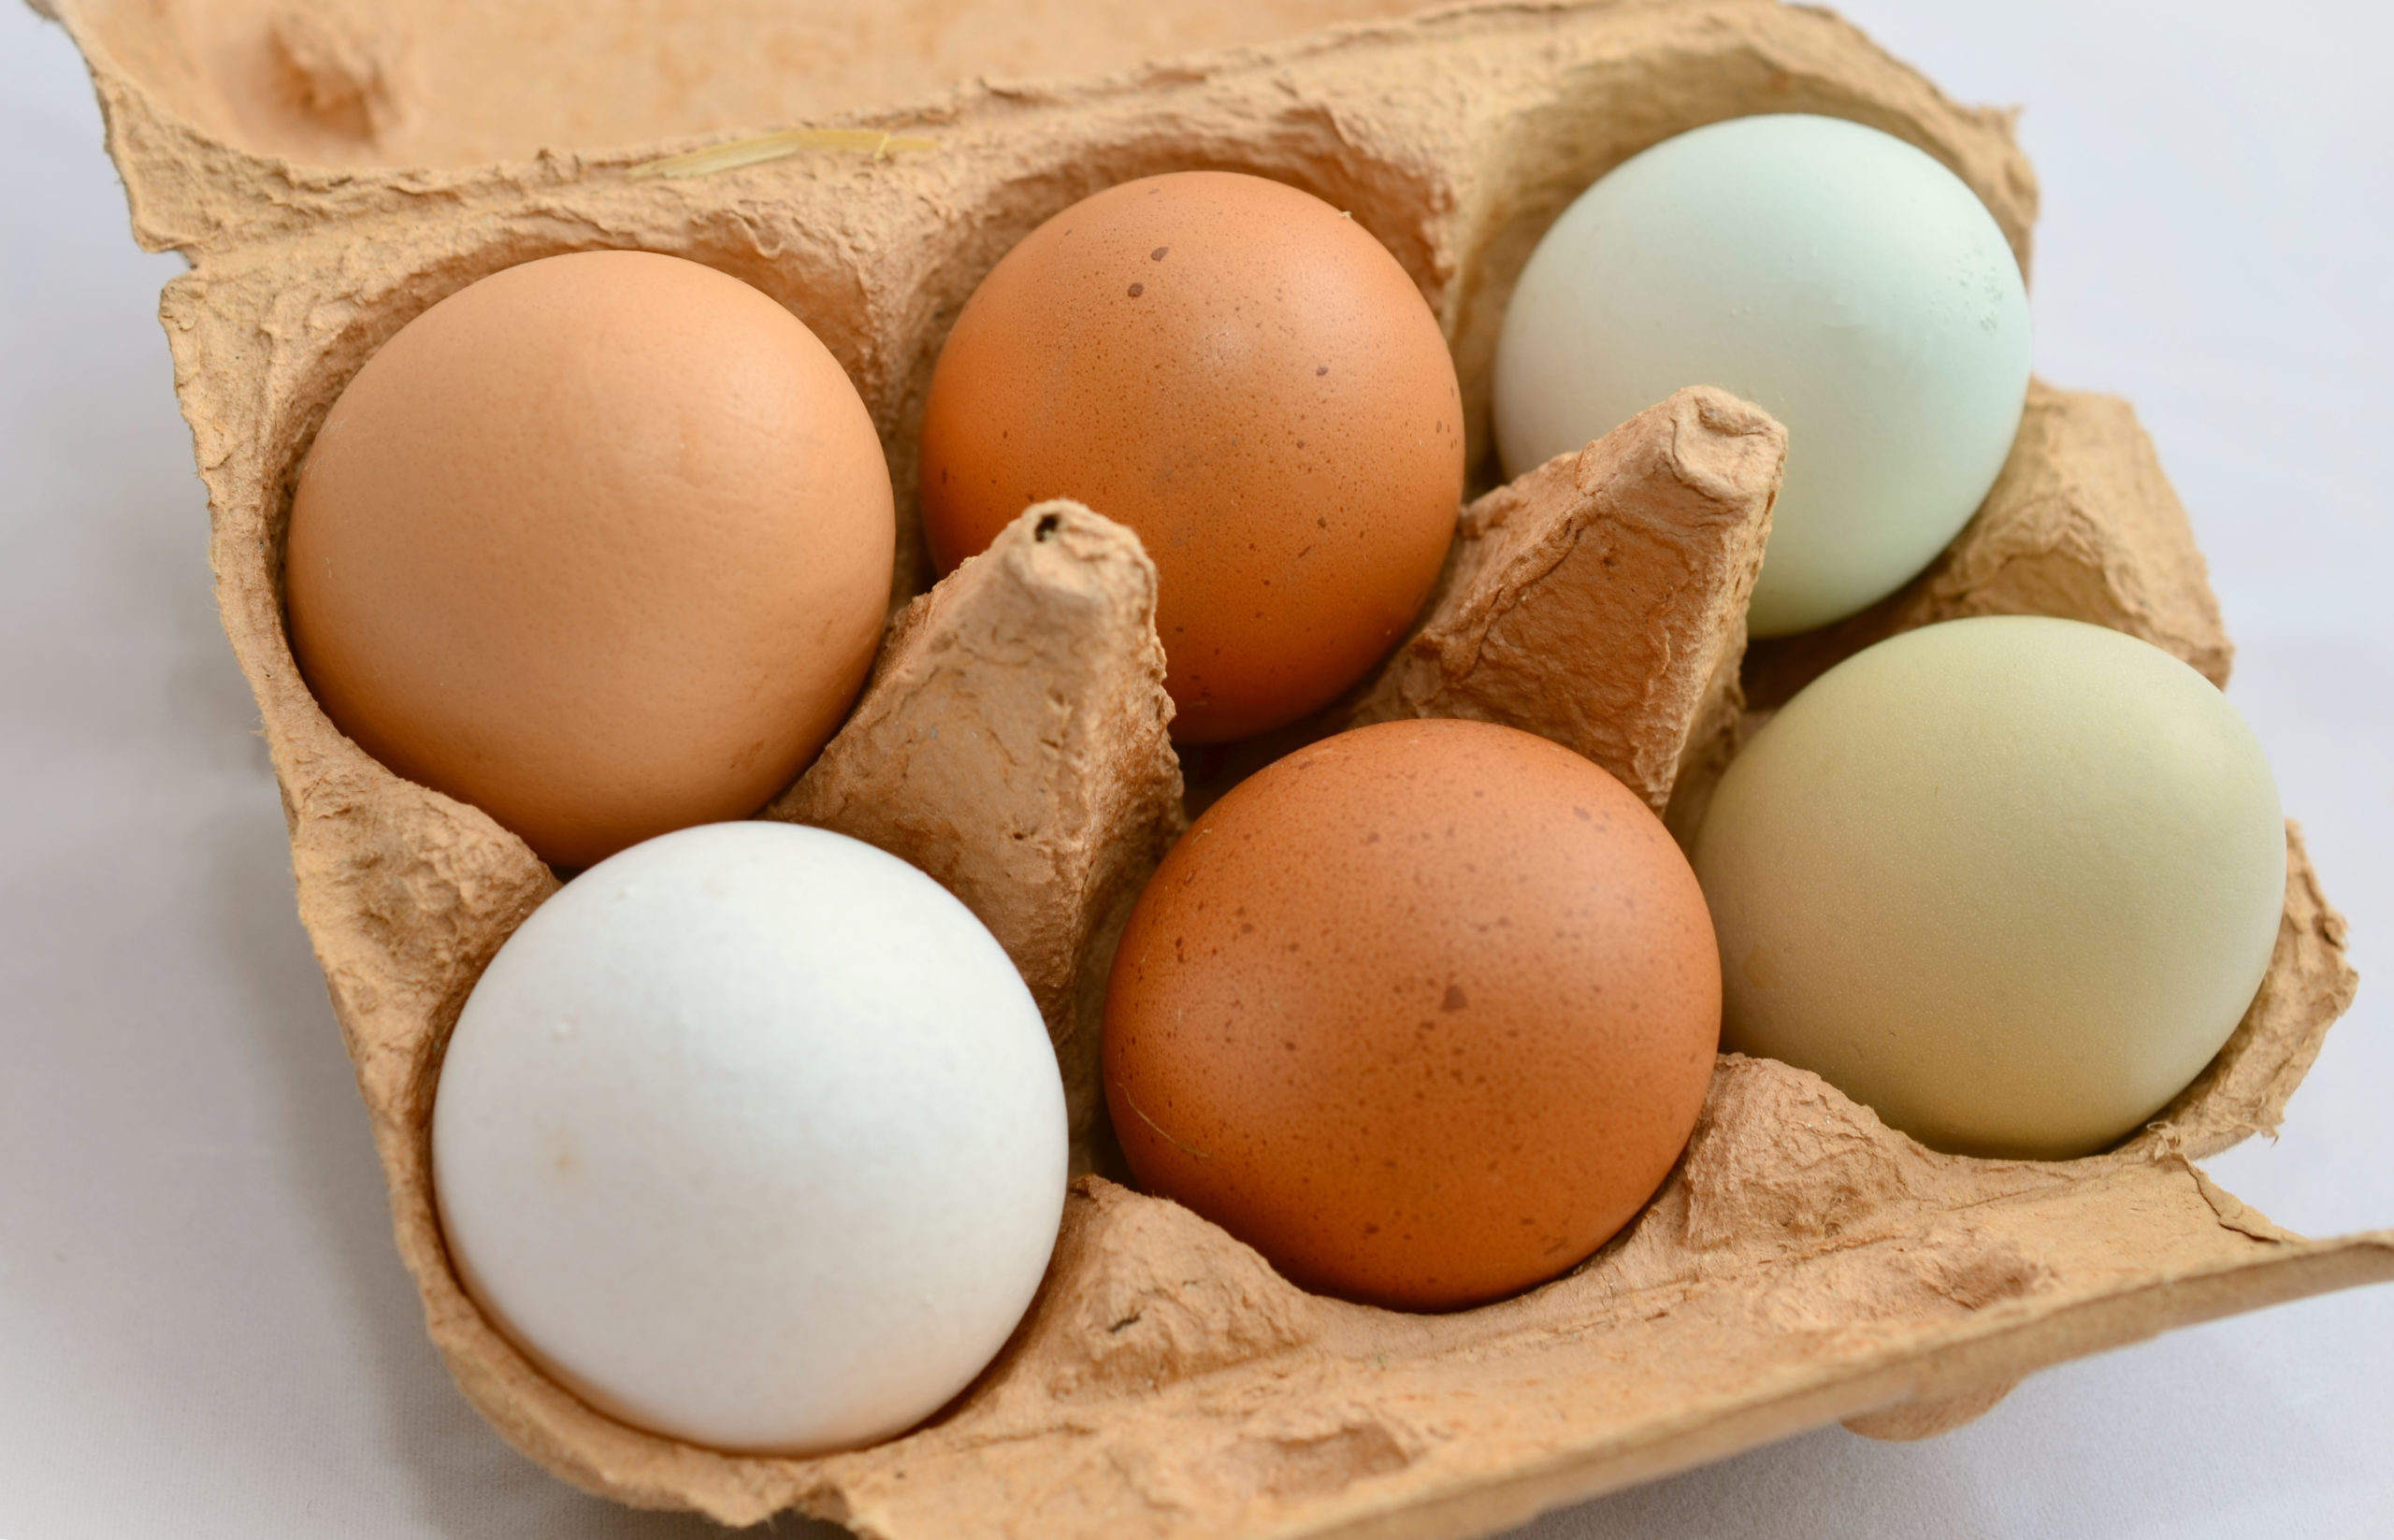 Protective bio-shell could extend egg shelf life